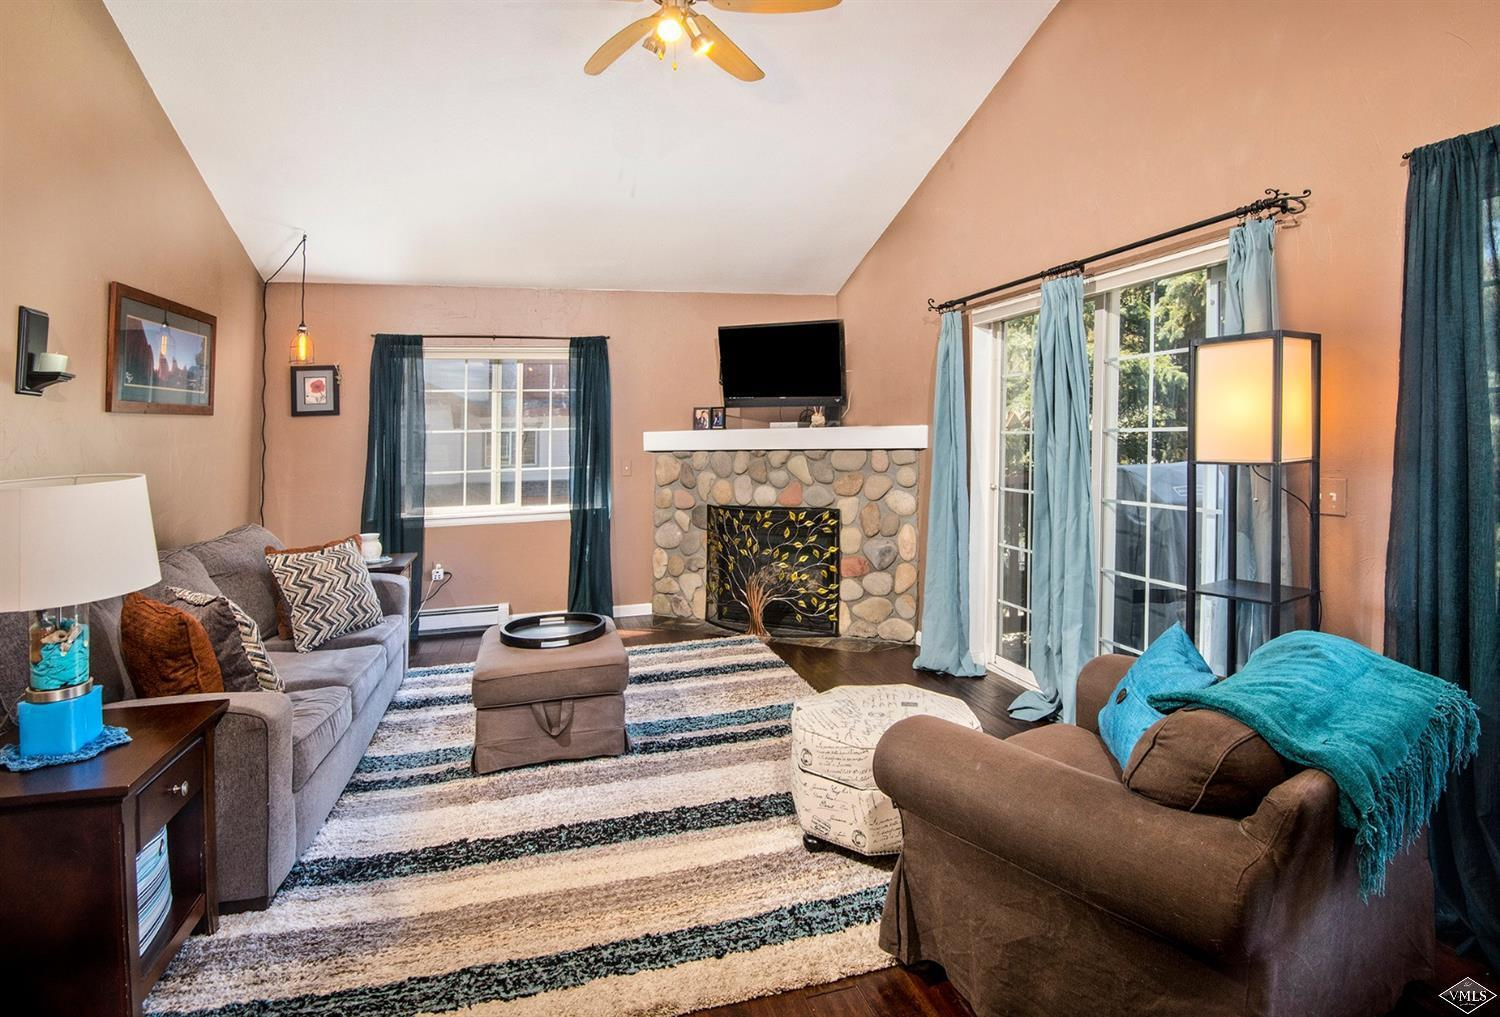 Great location near the pool, hot tub & playground; end garage attached to this well lit, top floor, 2 bedroom/2 bath residence. Live on one level, enjoy your patio while overlooking the kids & pets play below. Plan your day just steps away at the river with private fishing rights. HOA dues include water & heat. Close to Riverwalk - grocery, restaurants, shopping and movies!